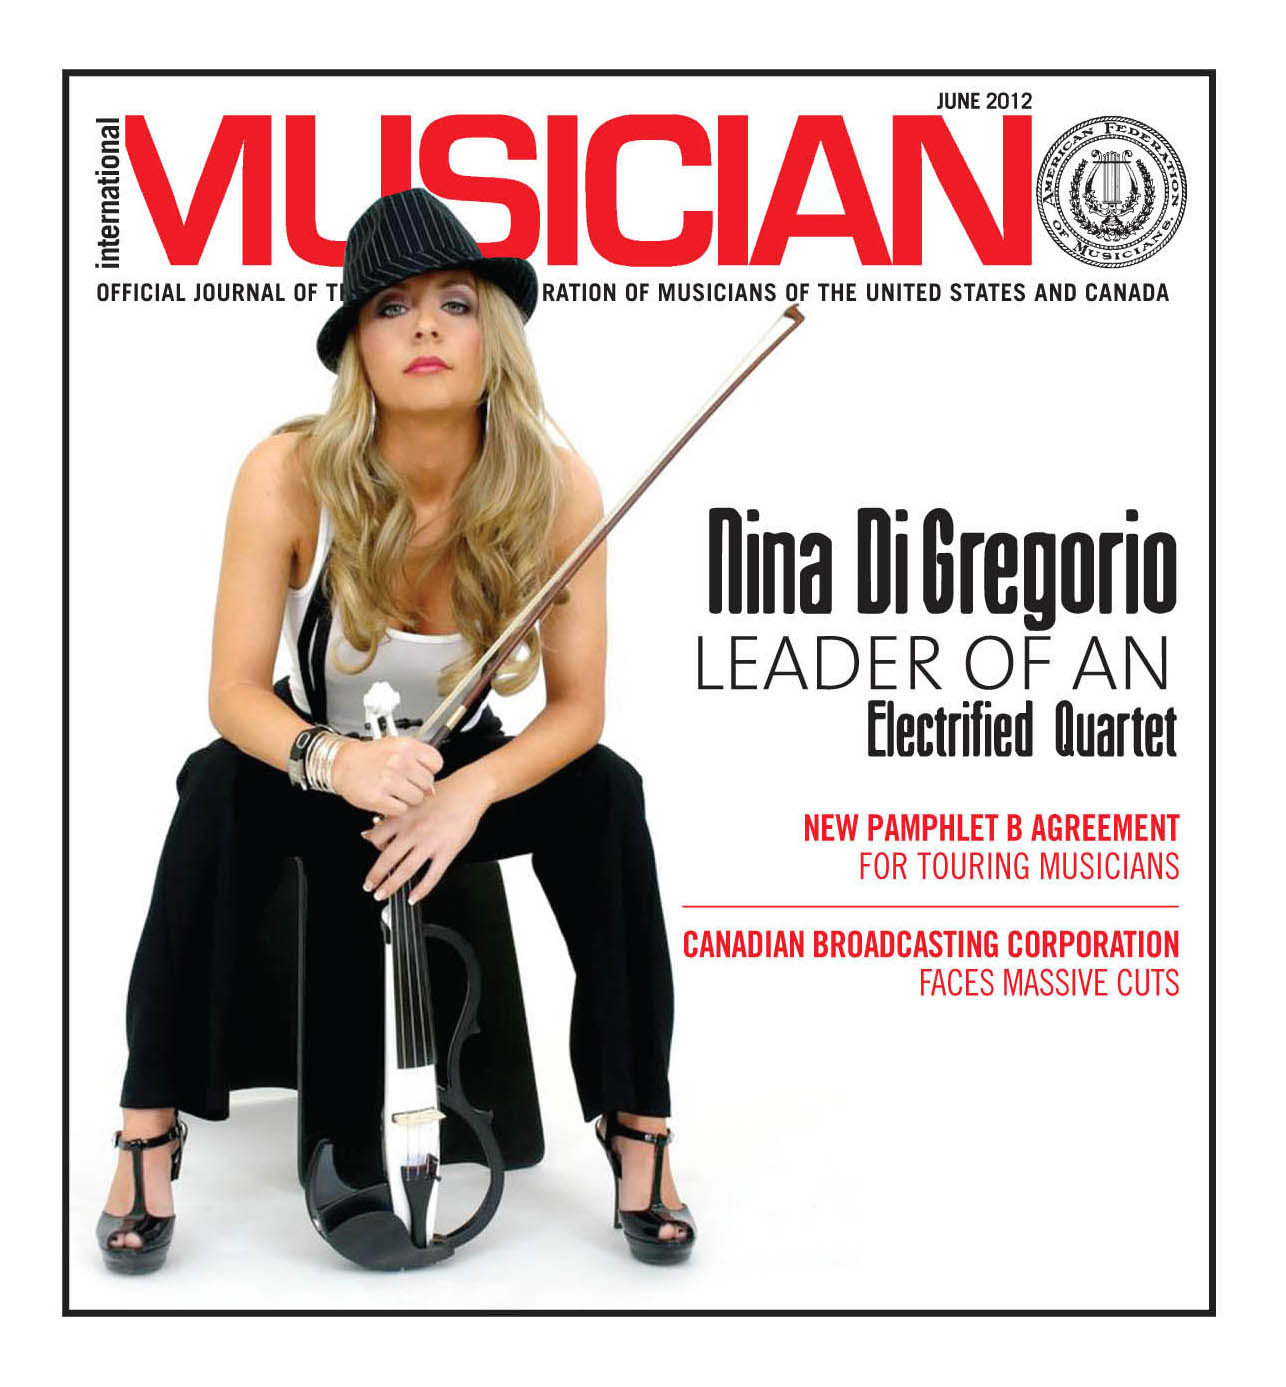 V110-06 - June 2012 - International Musician Magazine